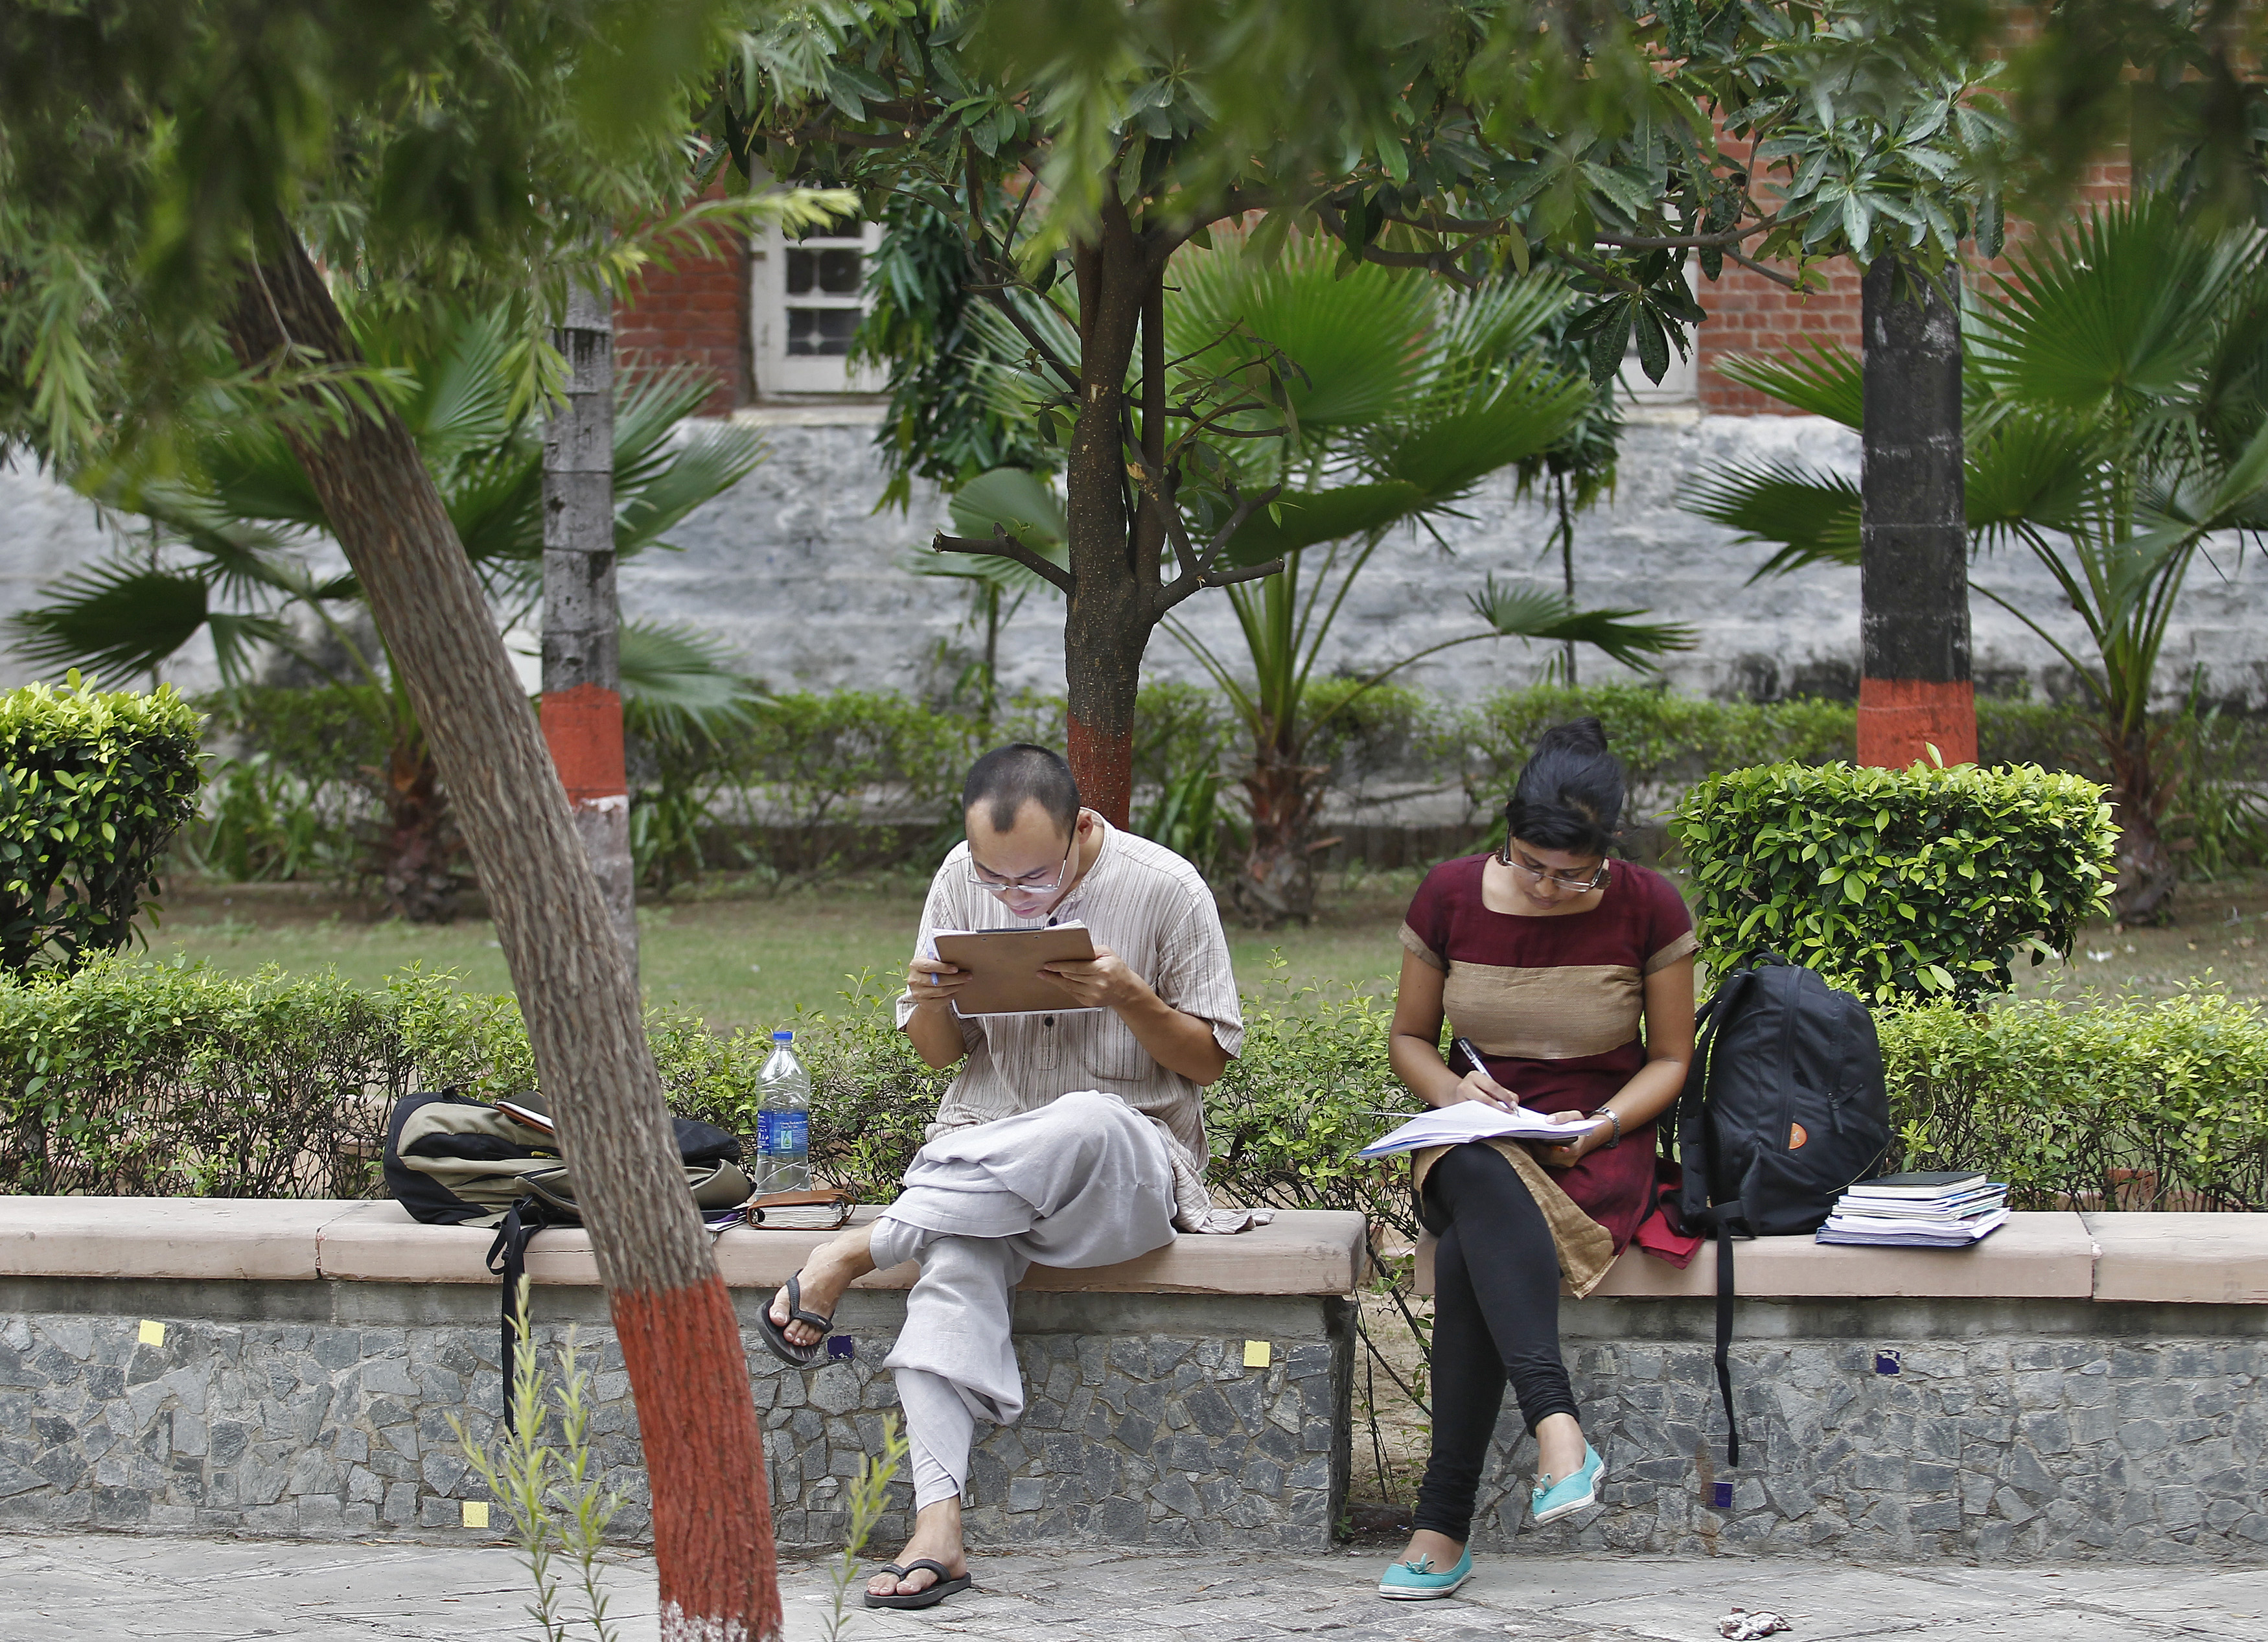 Indian students study inside the Delhi University campus in New Delhi September 20, 2013. Picture taken September 20, 2013.  To match INDIA-EDUCATION/  REUTERS/Anindito Mukherjee (INDIA - Tags: EDUCATION) - RTR3FJFS